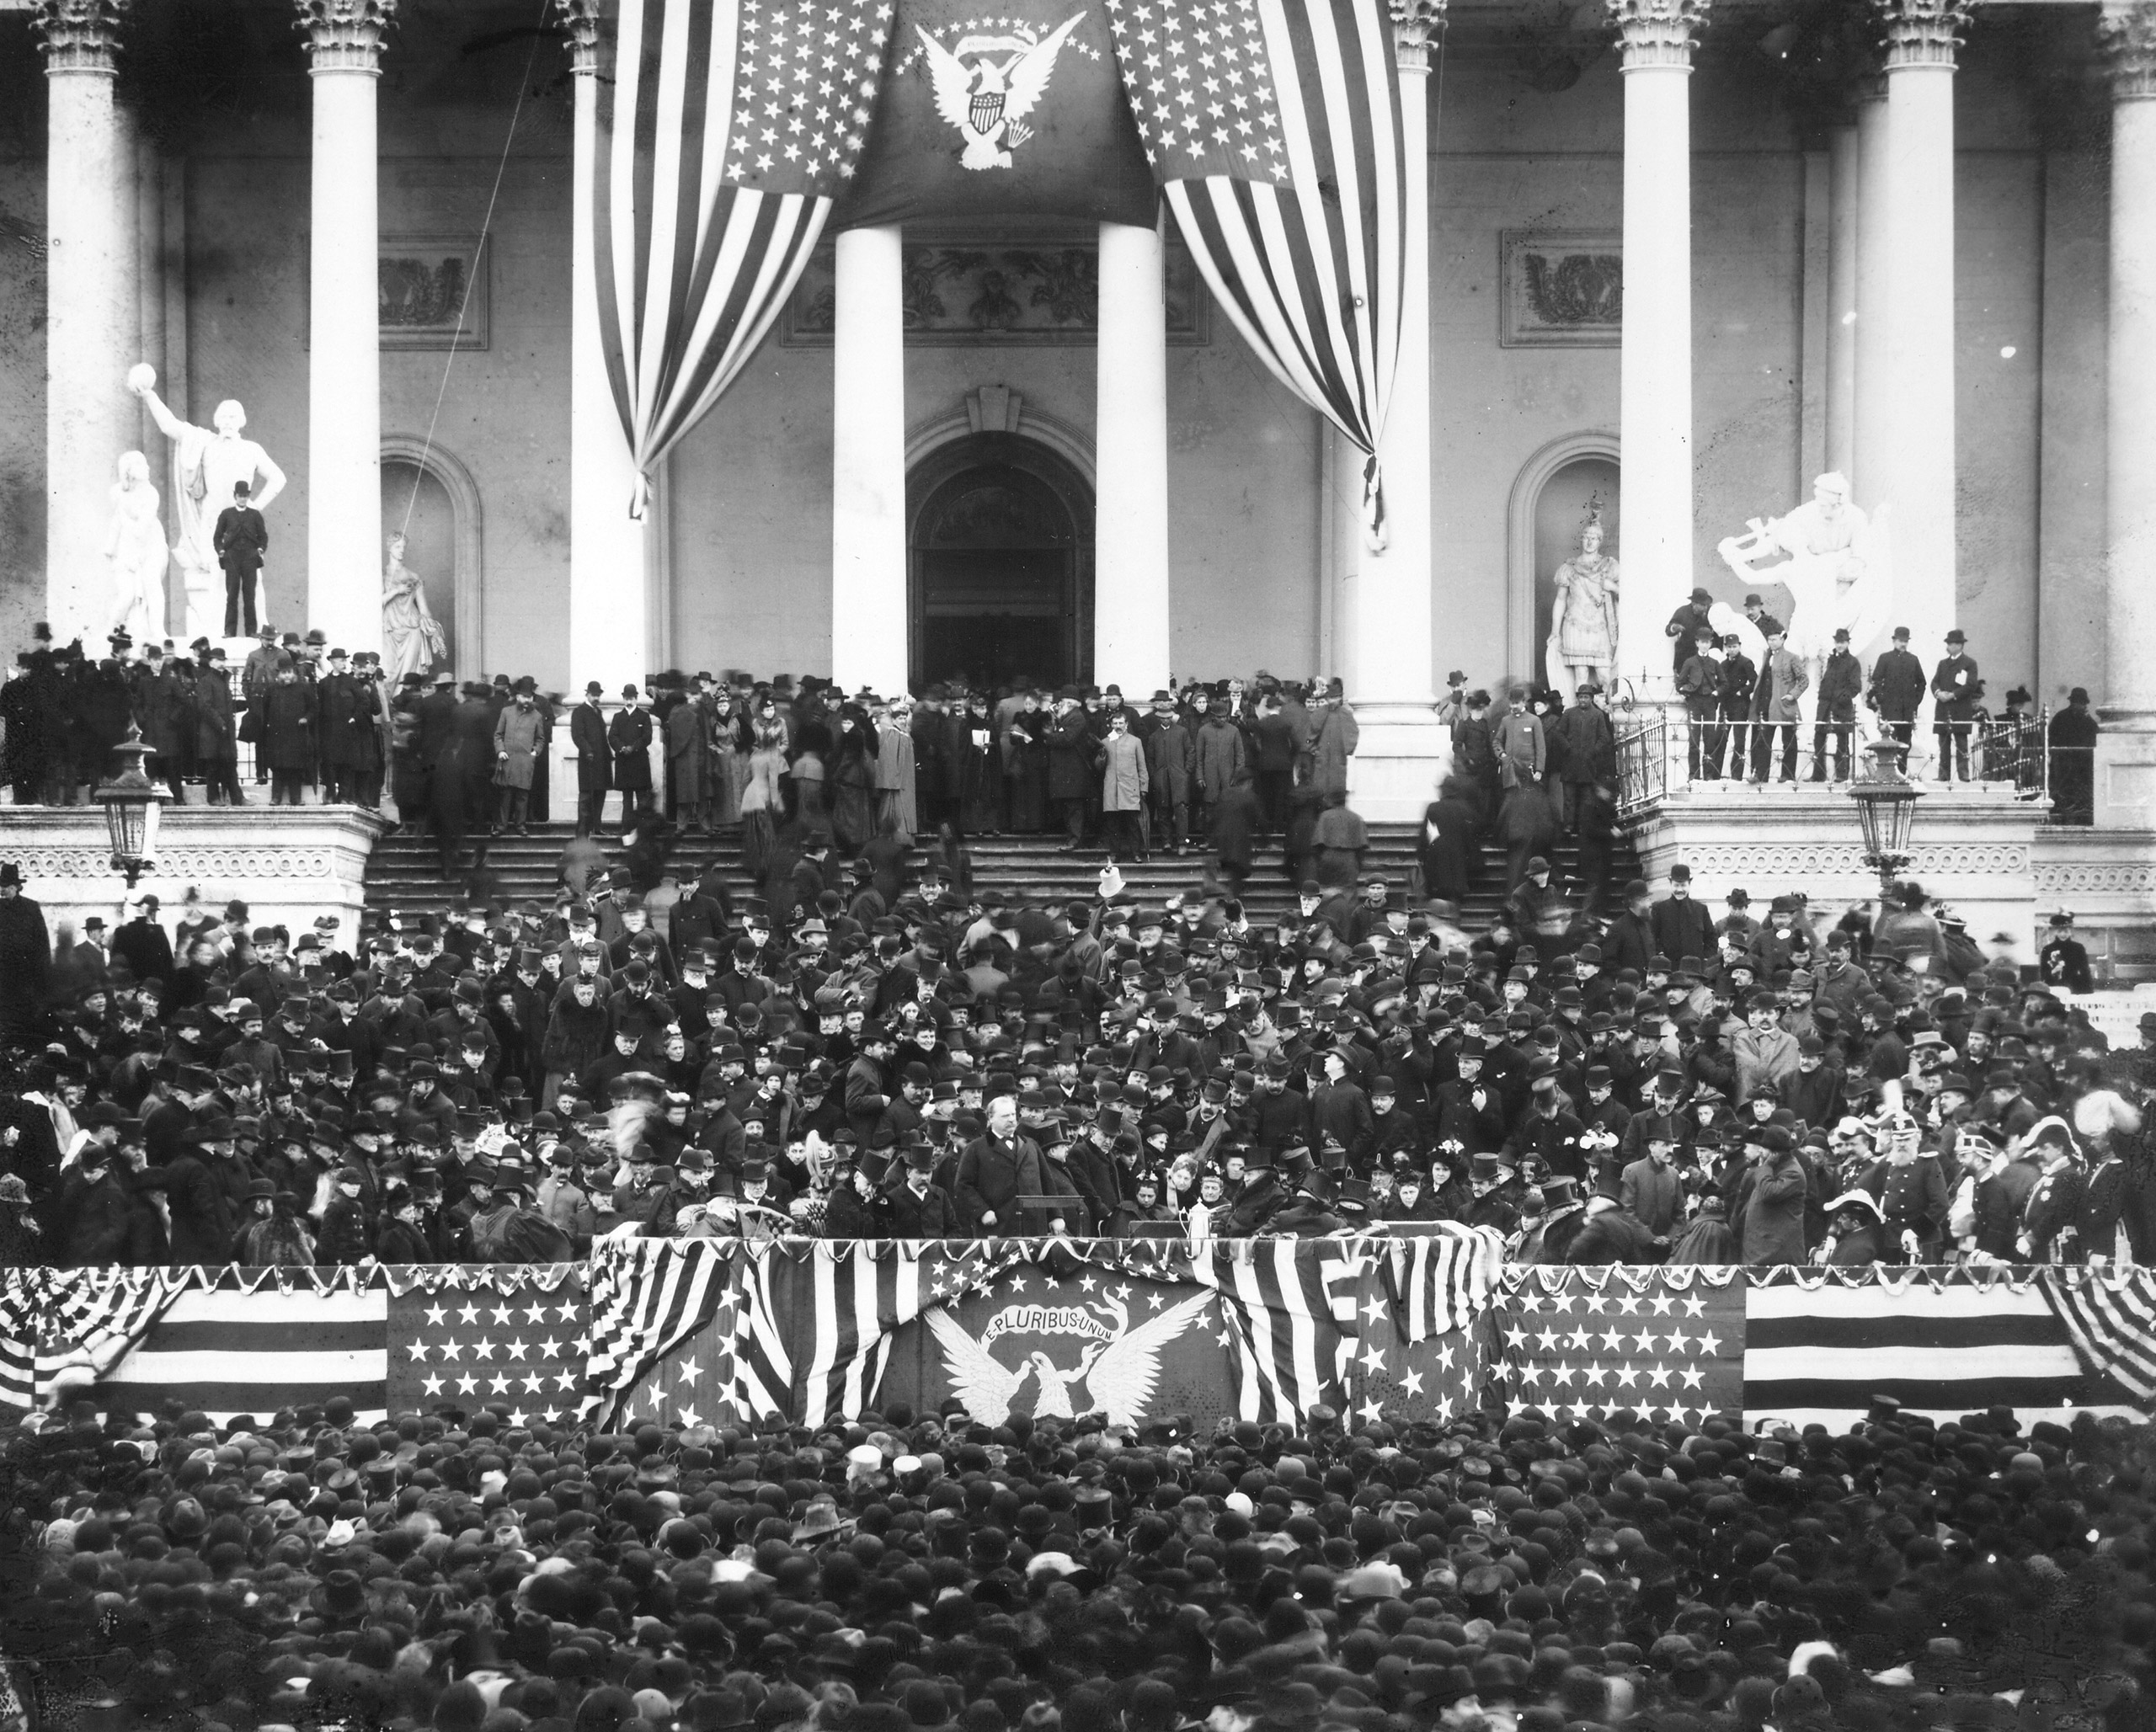 Grover Cleveland's second inauguration, 1893.